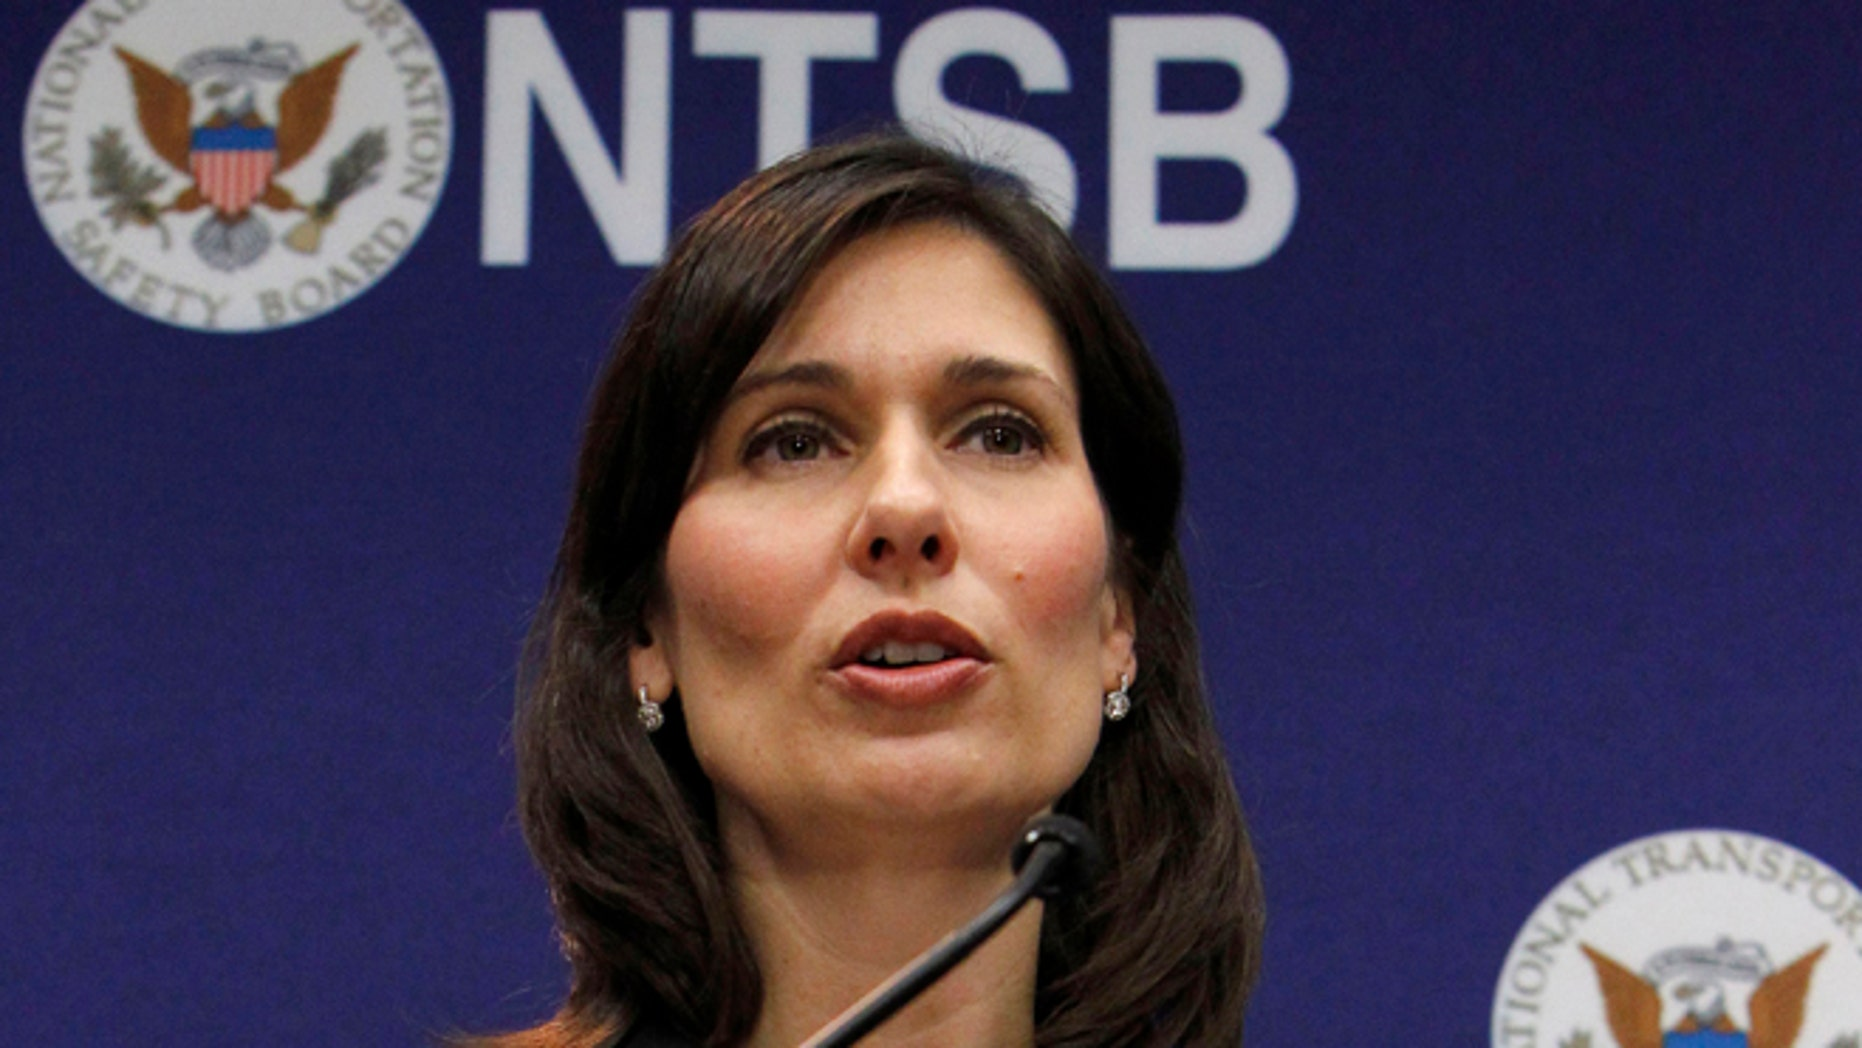 Feb. 7, 2013: National Transportation Safety Board (NTSB) Chair Deborah Hersman speaks during a news conference in Washington. Federal accident investigators were weighing a recommendation Tuesday that states reduce their threshold for drunken driving from the current .08 blood alcohol content to .05, a standard that has been shown to substantially reduce highway deaths in other countries. (AP)